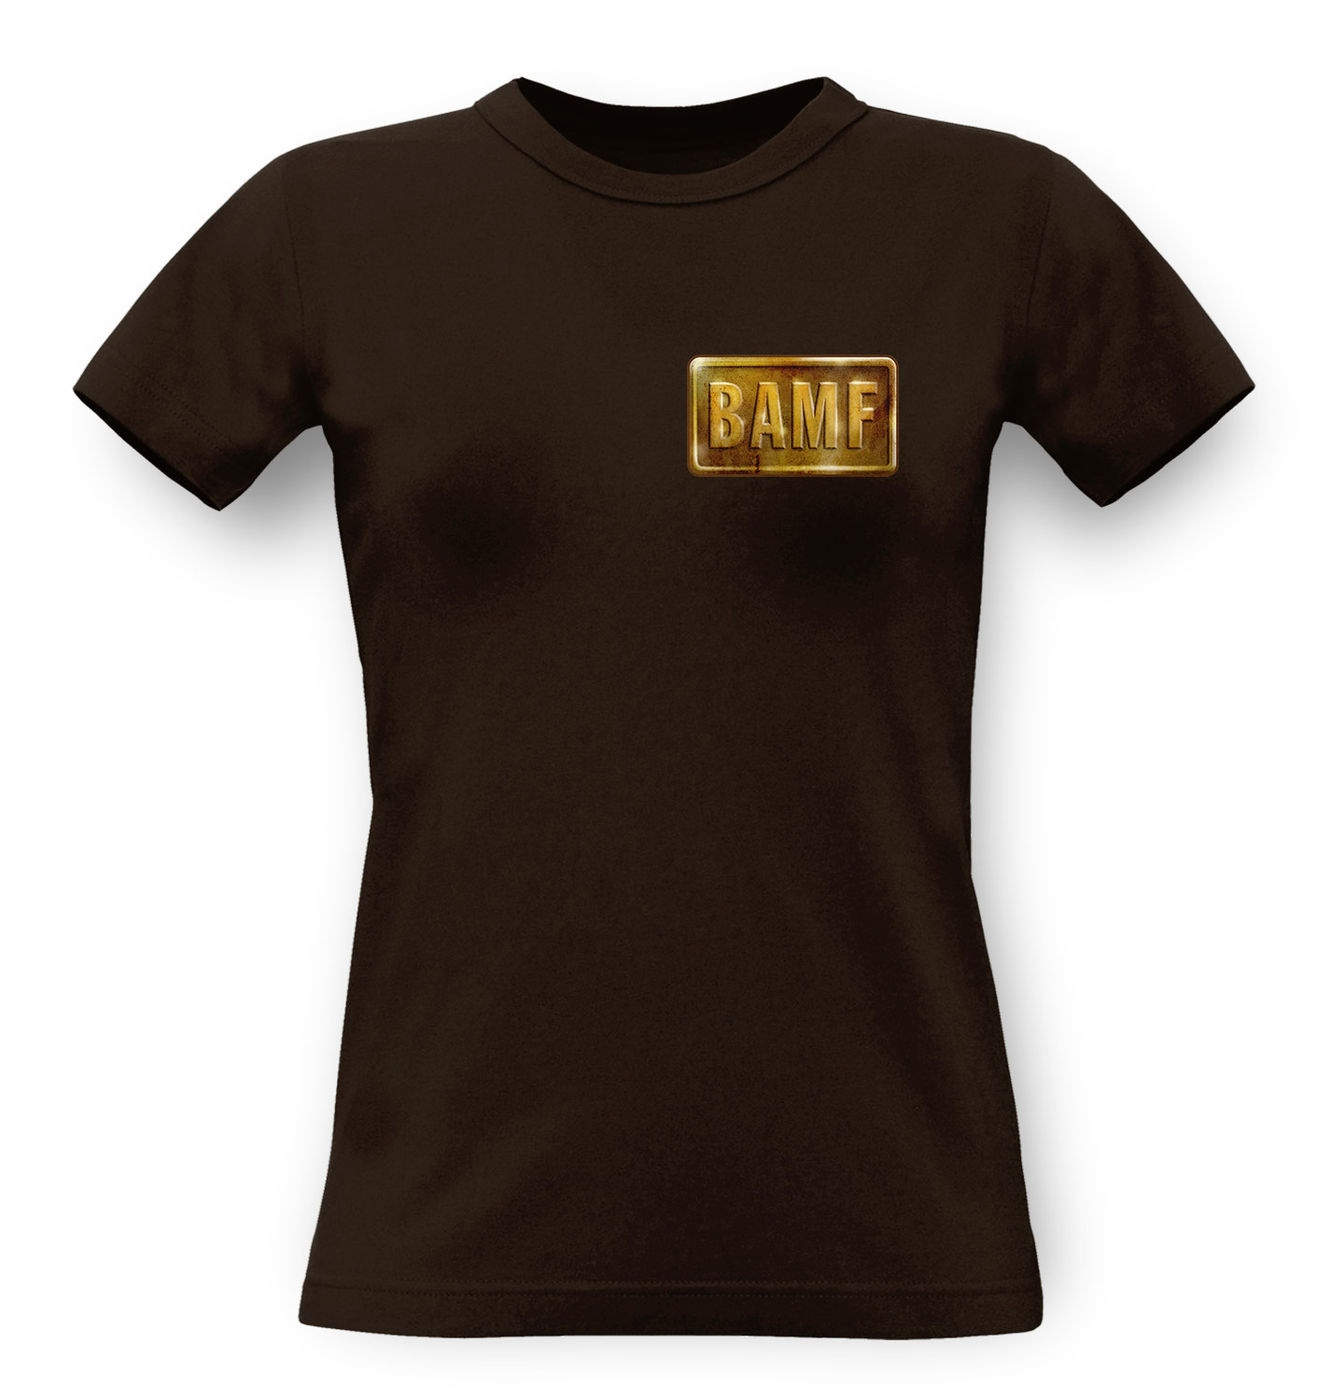 BAMF McCree Badge classic women's t-shirt by Something Geeky